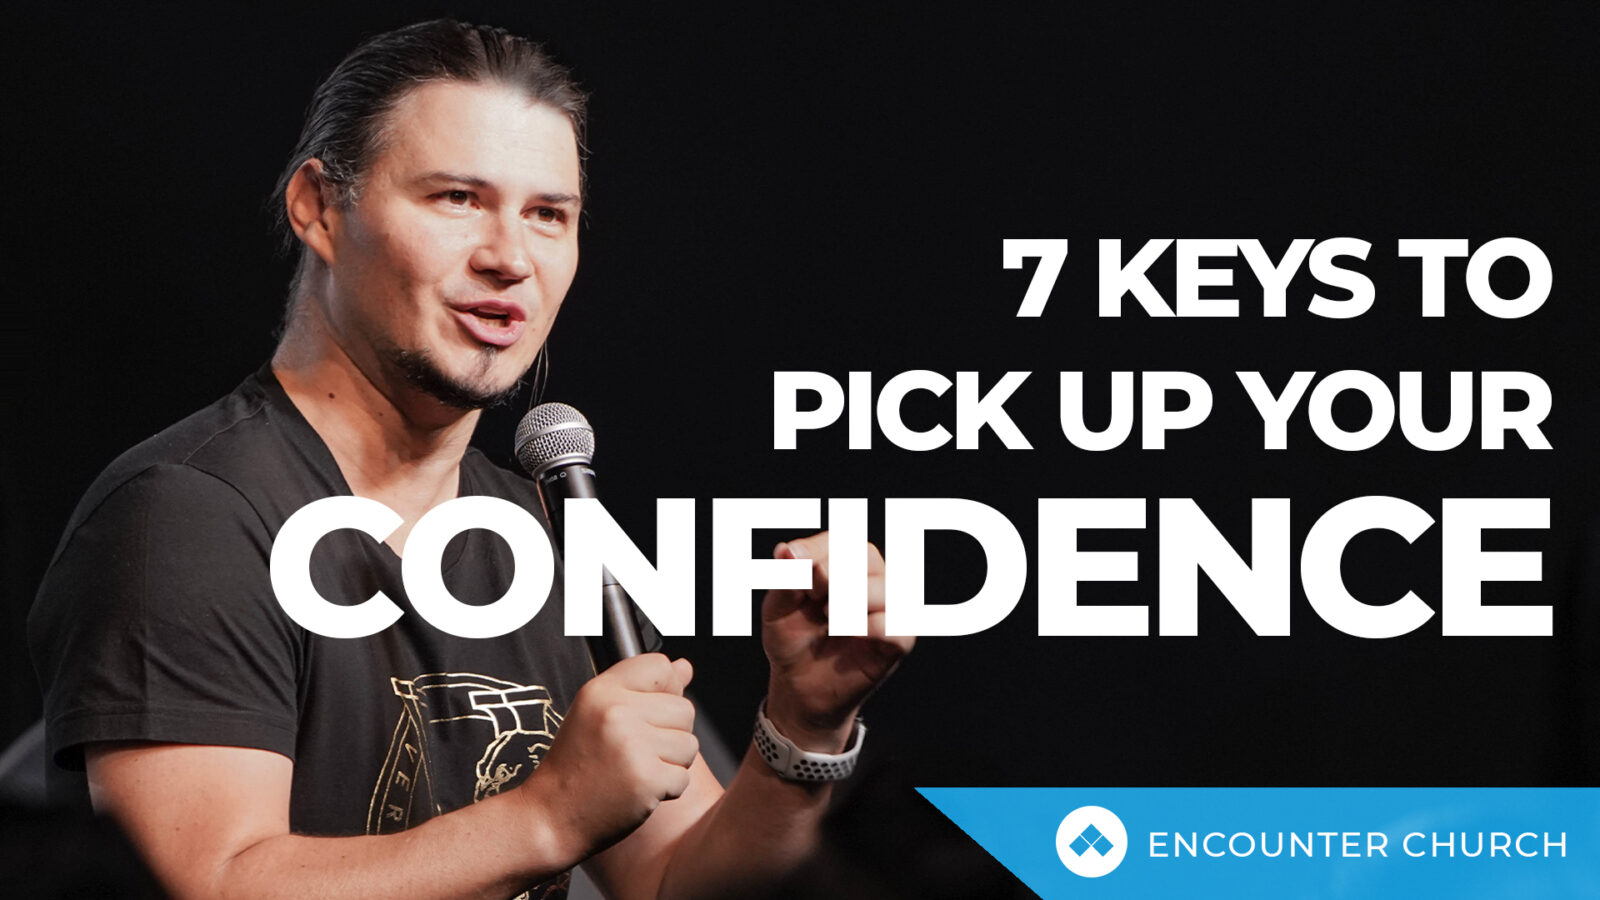 7 Keys To Pick Up Your Confidence